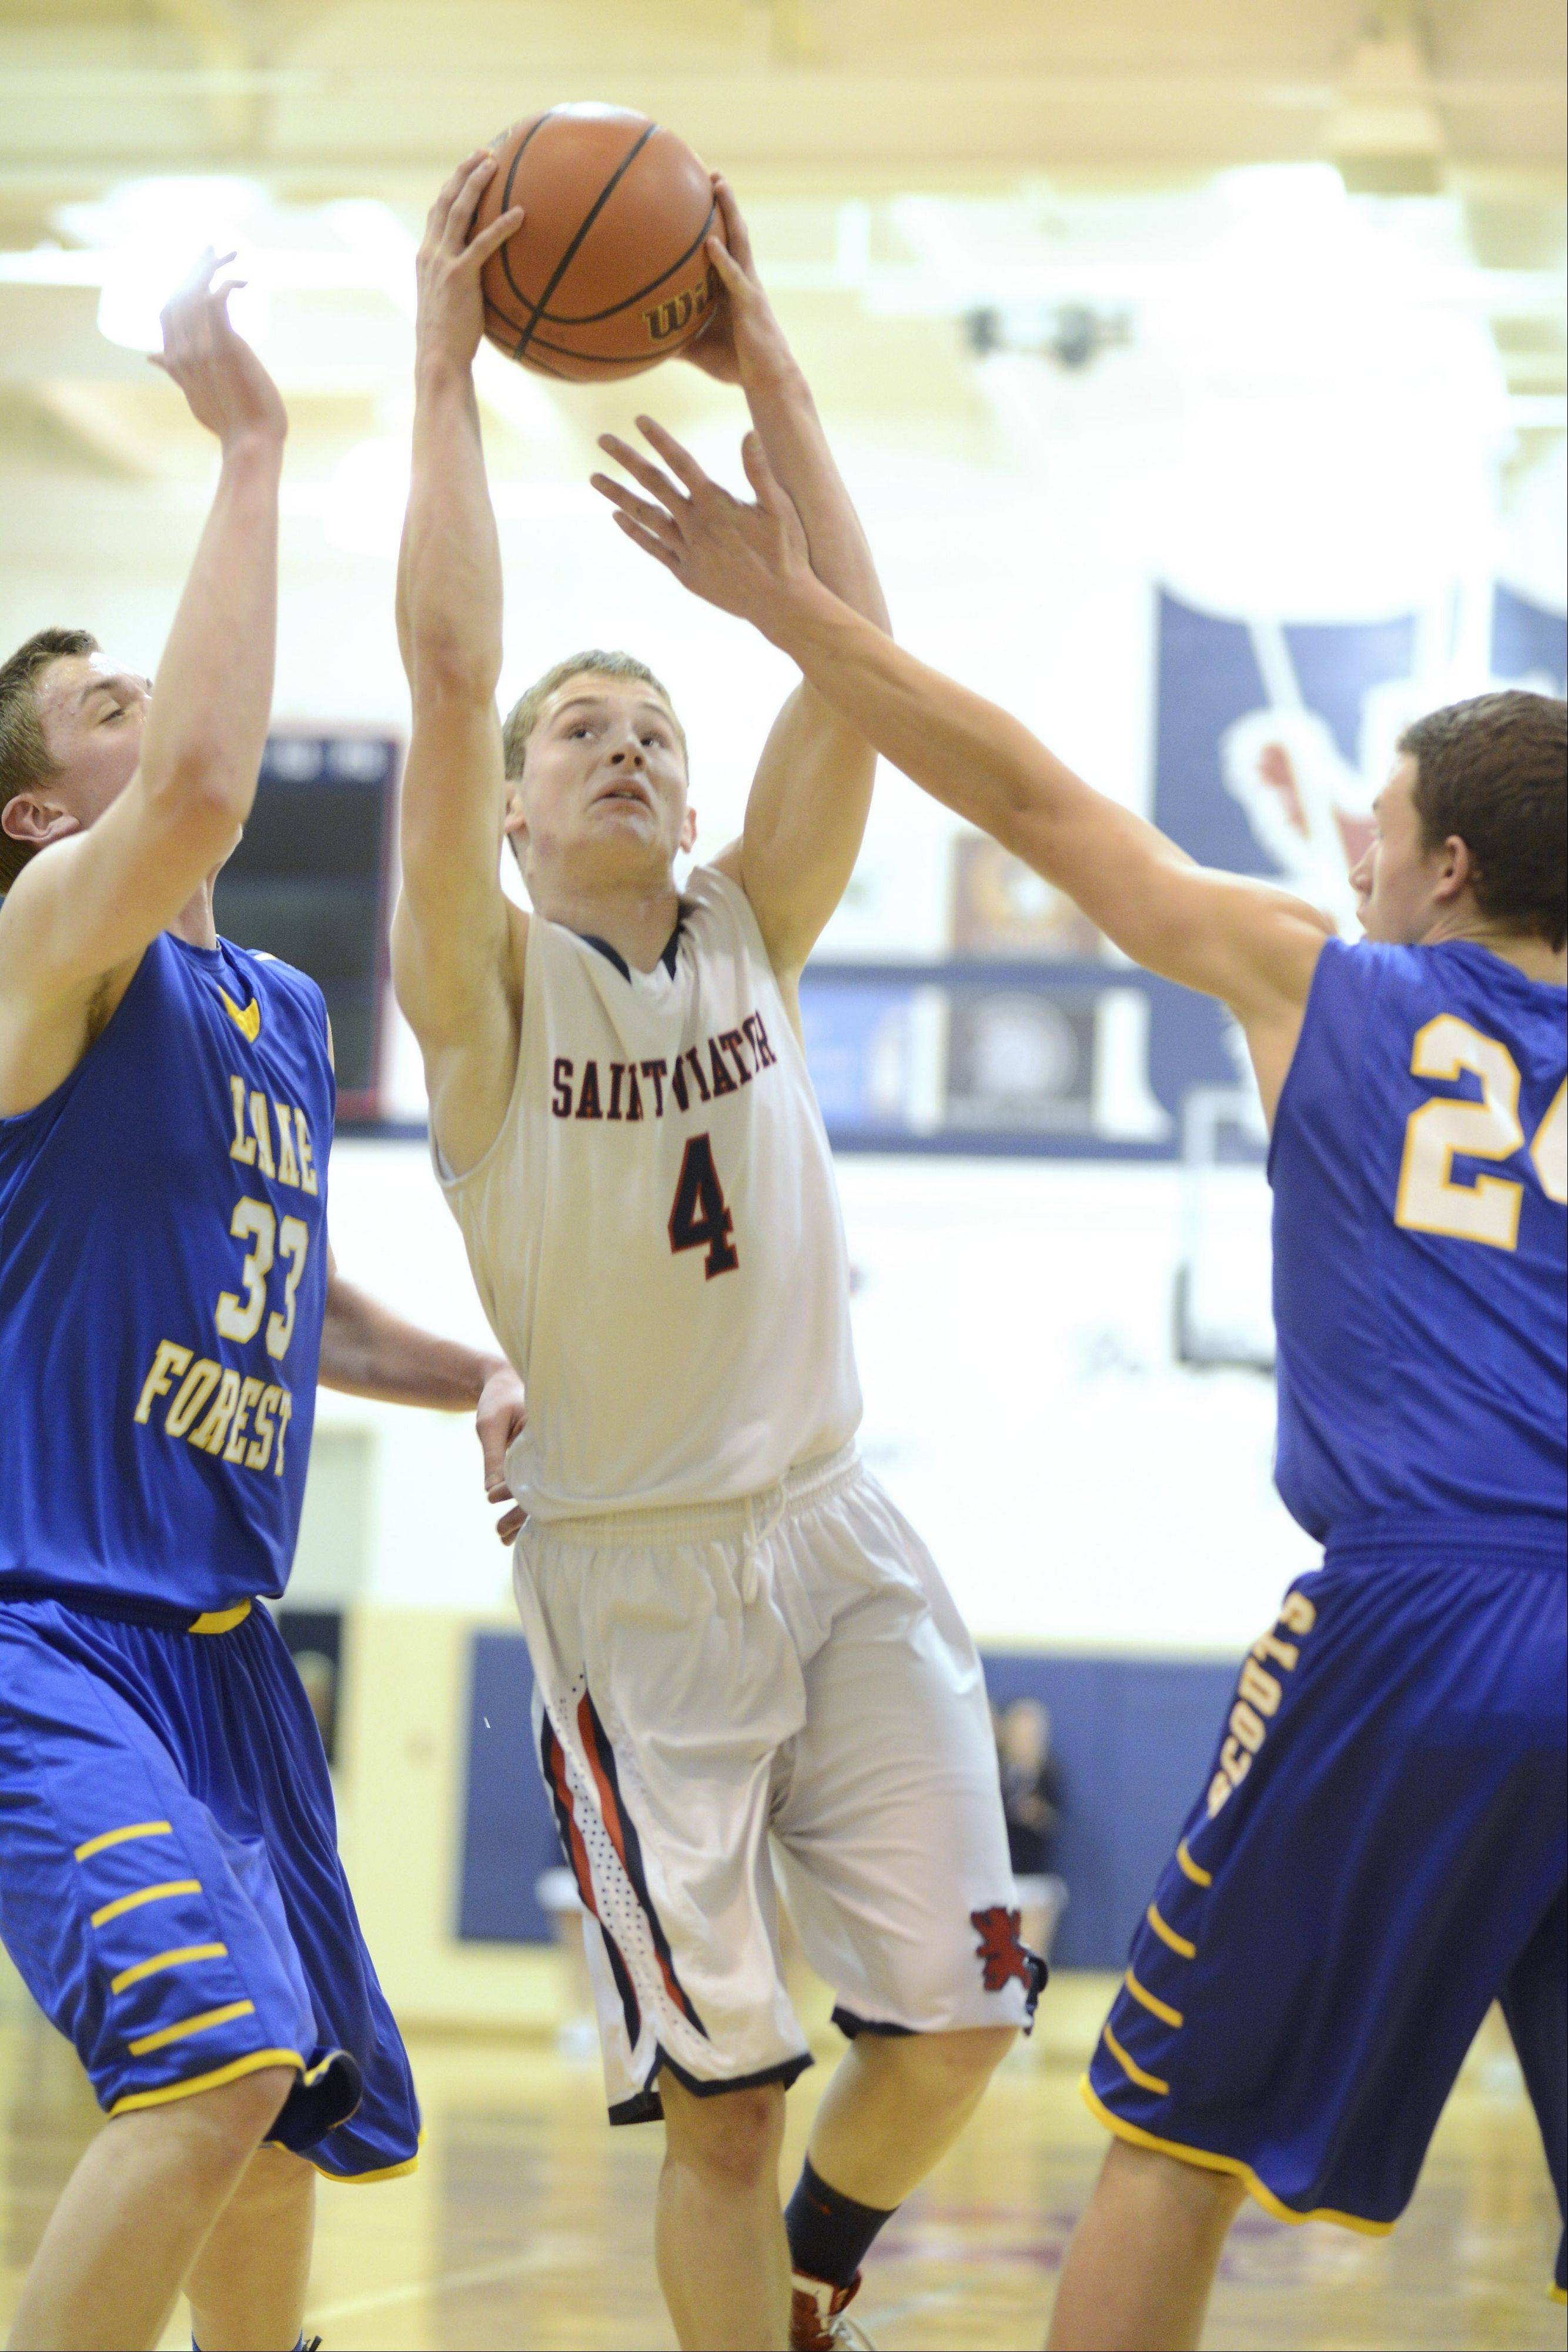 St. Viator's Kevin Hammarlund drives to the basket between Lake Forest's Sam Downey, left, and Cal Miller.